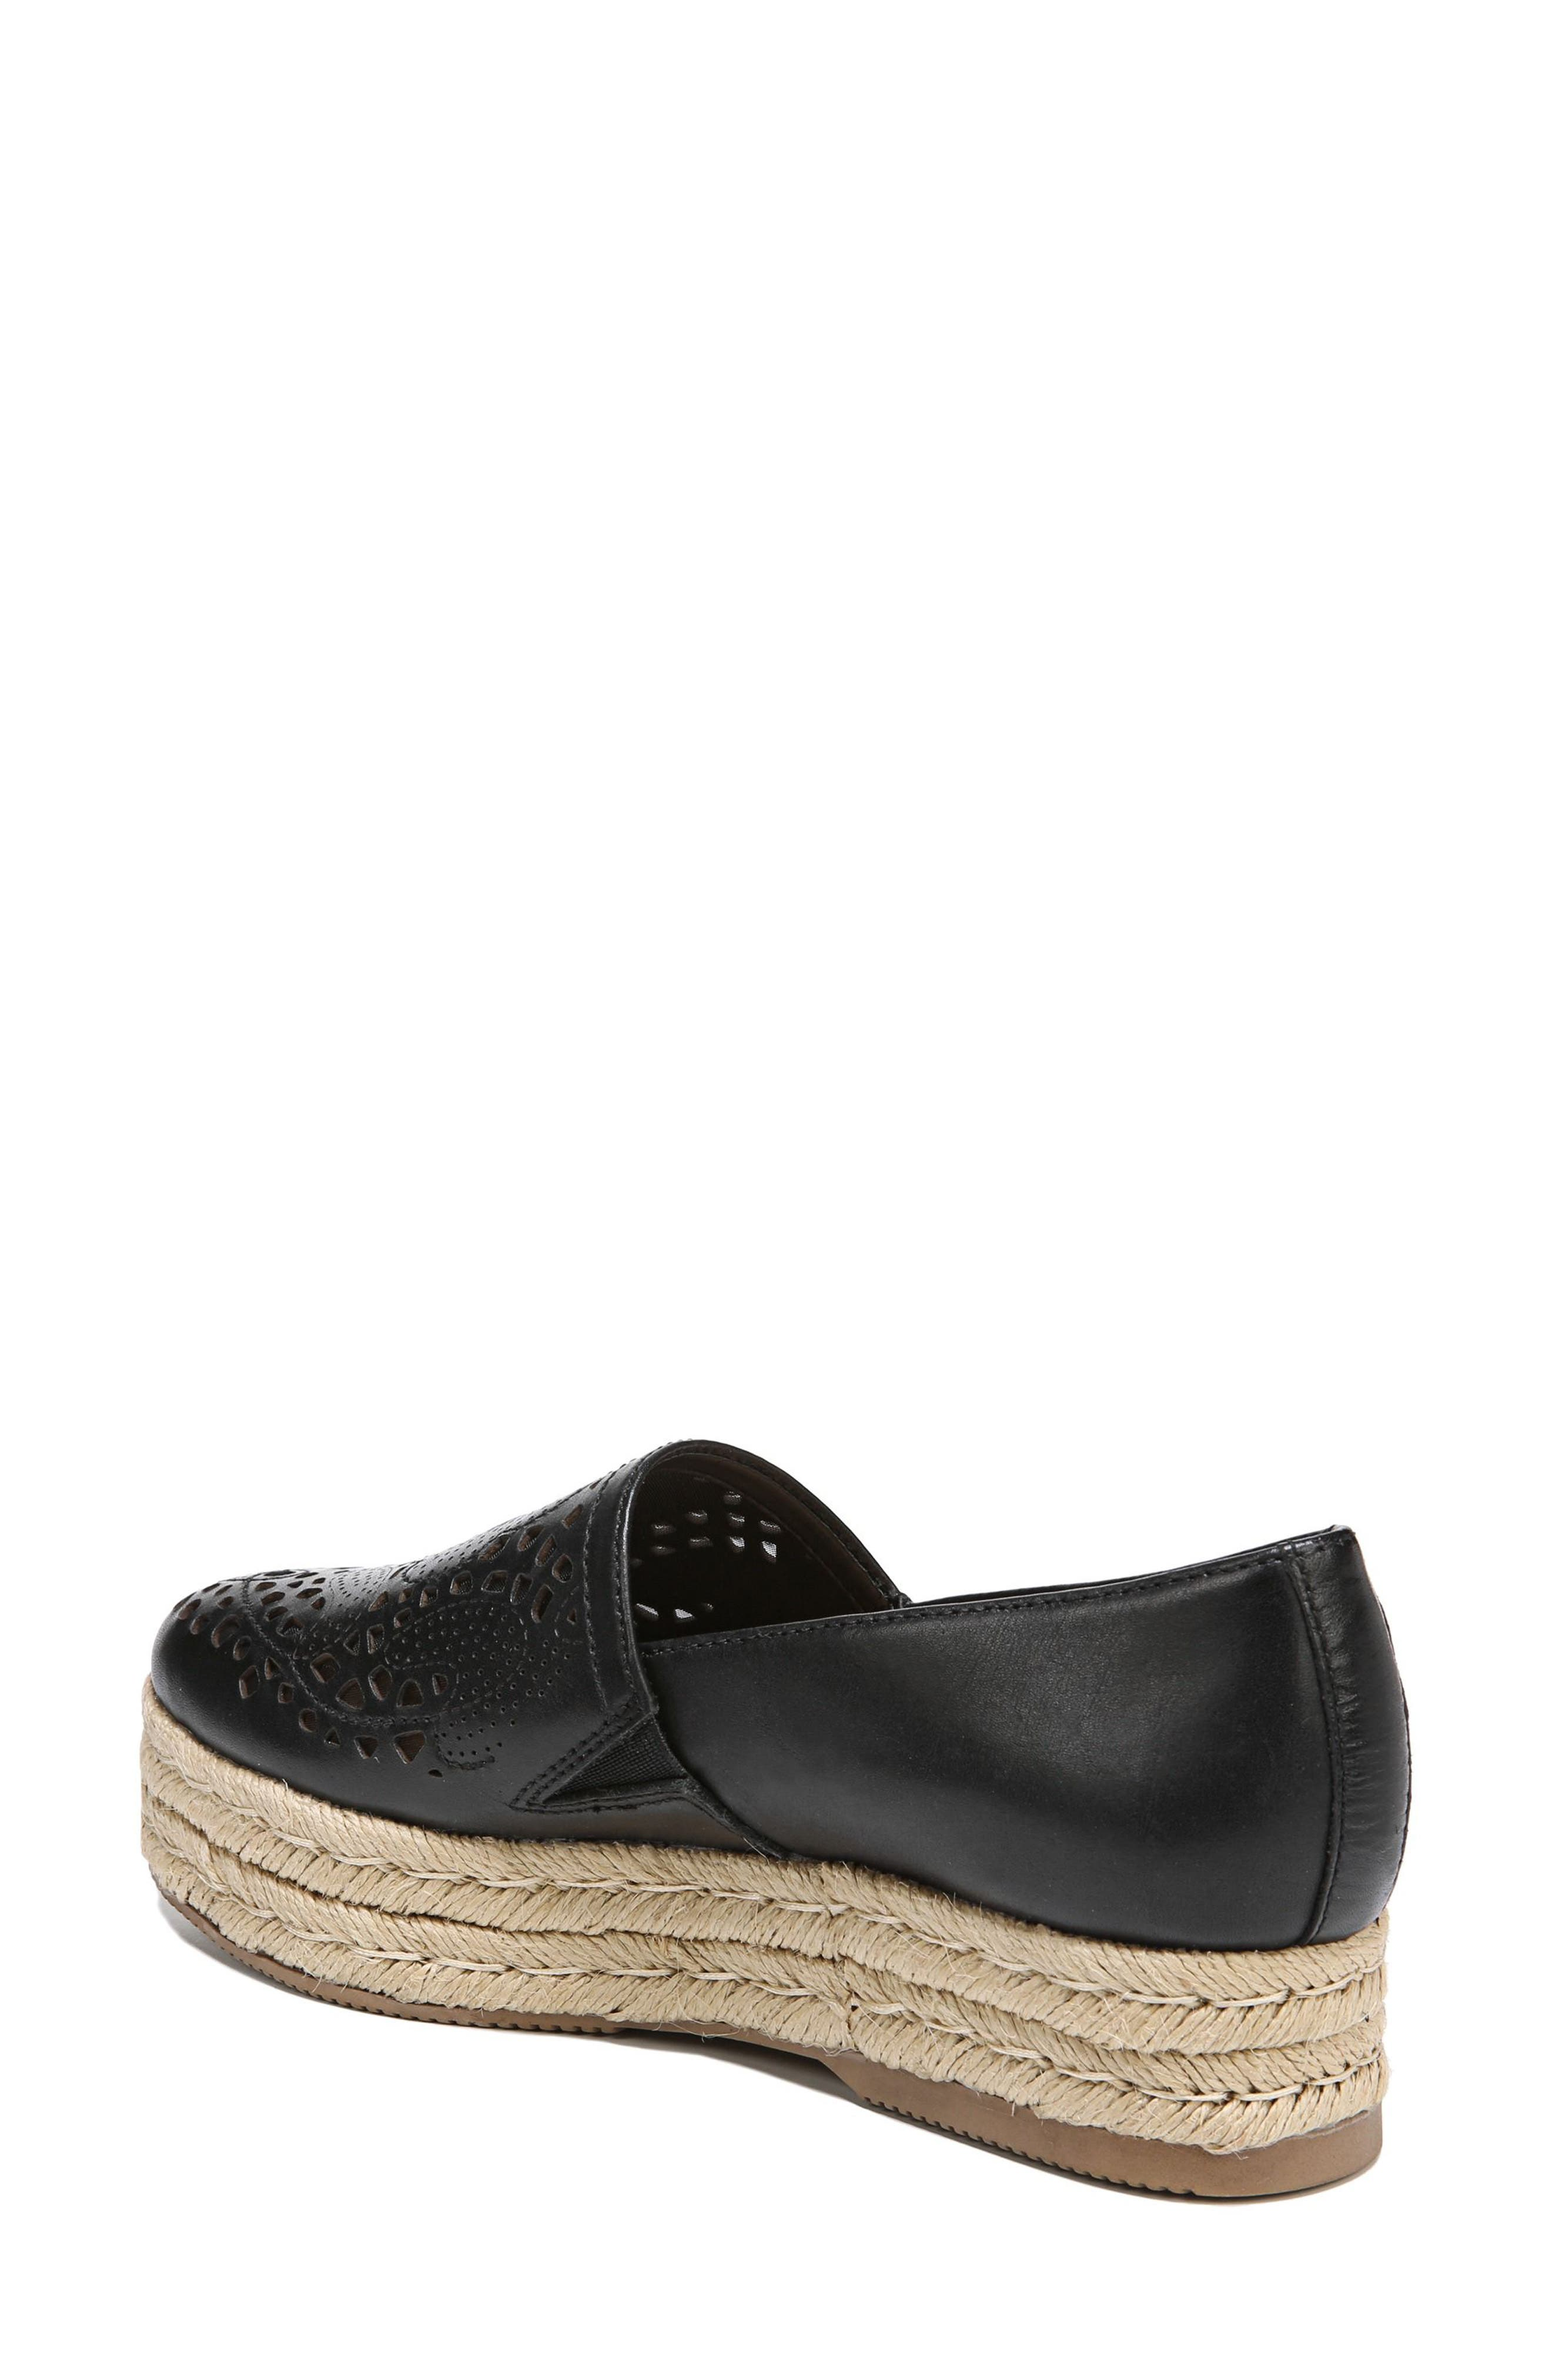 Thea Perforated Platform Espadrille,                             Alternate thumbnail 2, color,                             001